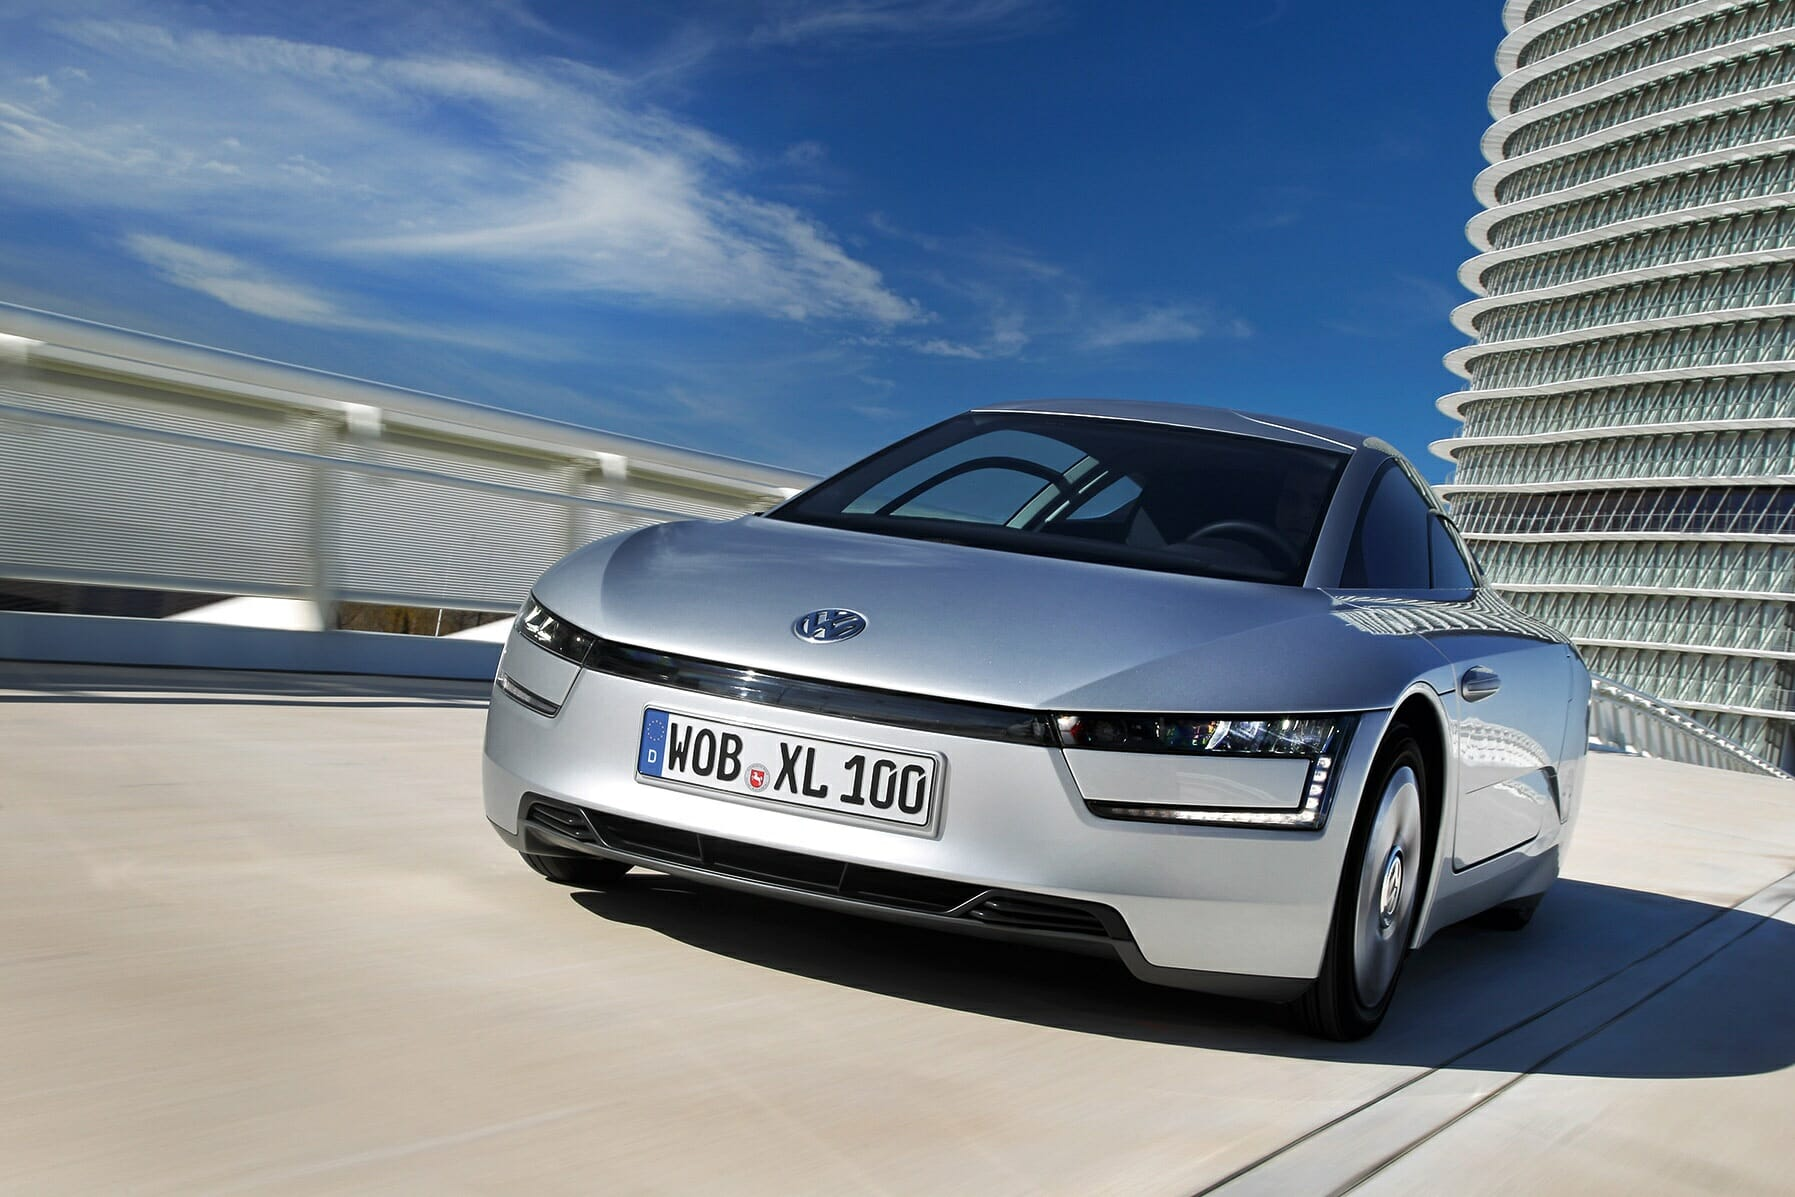 Volkswagen Recently Launched Its Most Advanced Car Yet The Xl1 German Carmaker S First Plug In Hybrid Is Said To Get Over 300 Miles A Gallon